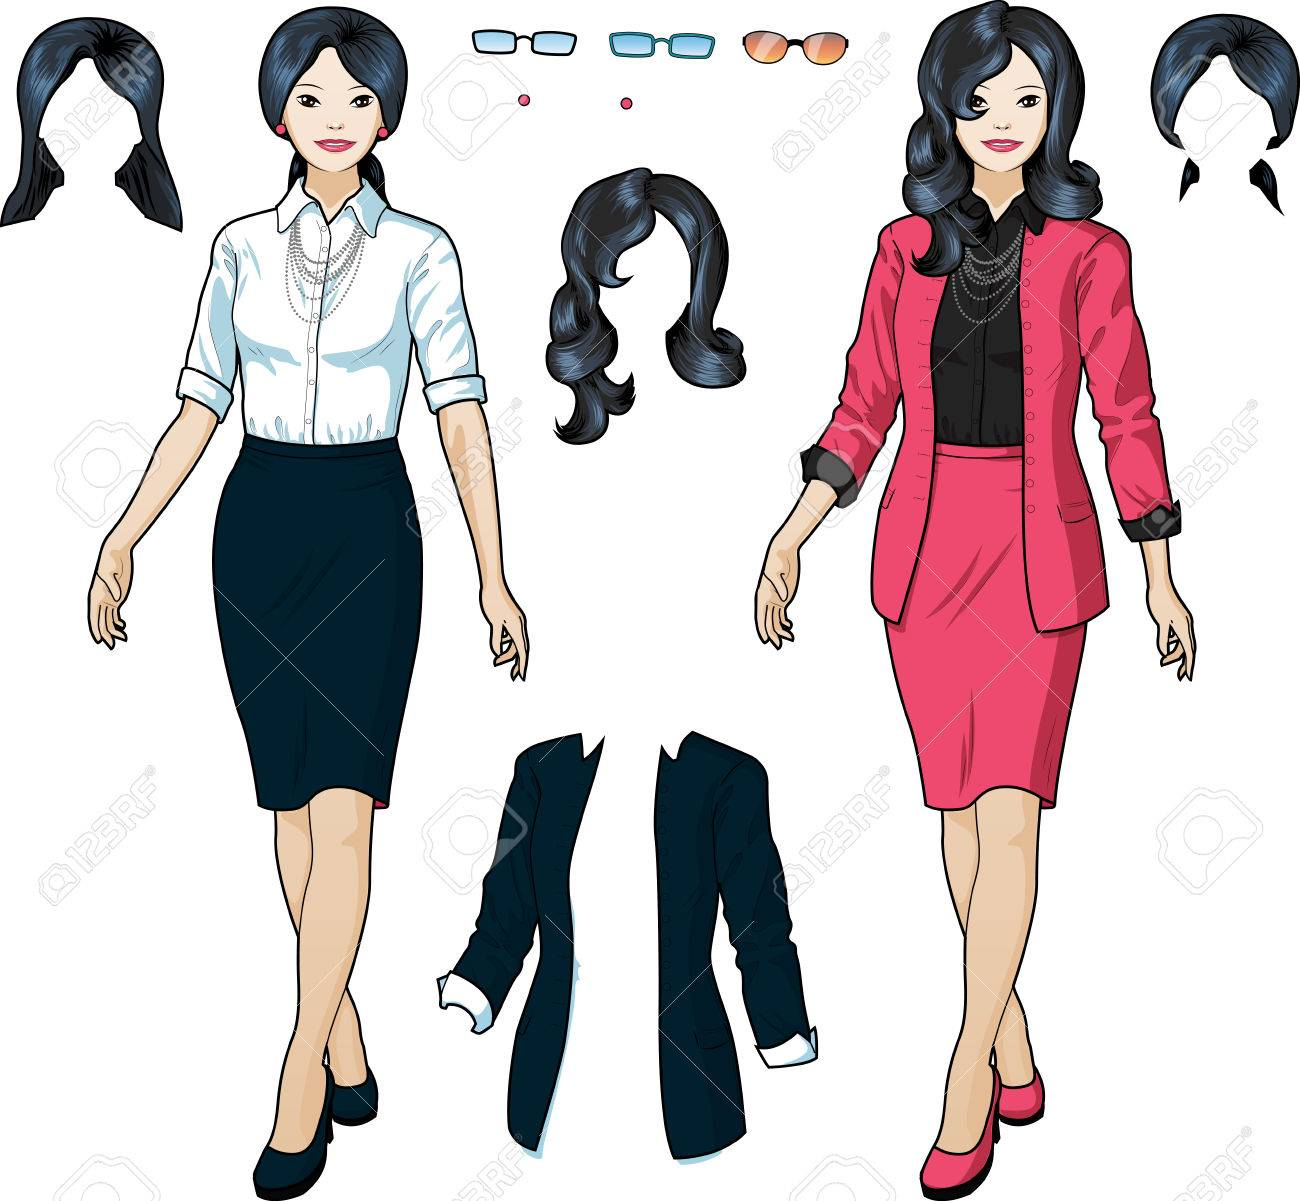 ac8fb5ae1fcf8 Beautiful businesswoman of Asian ethnicity in elegant formal wear for office  vector isolated illustrations variation set